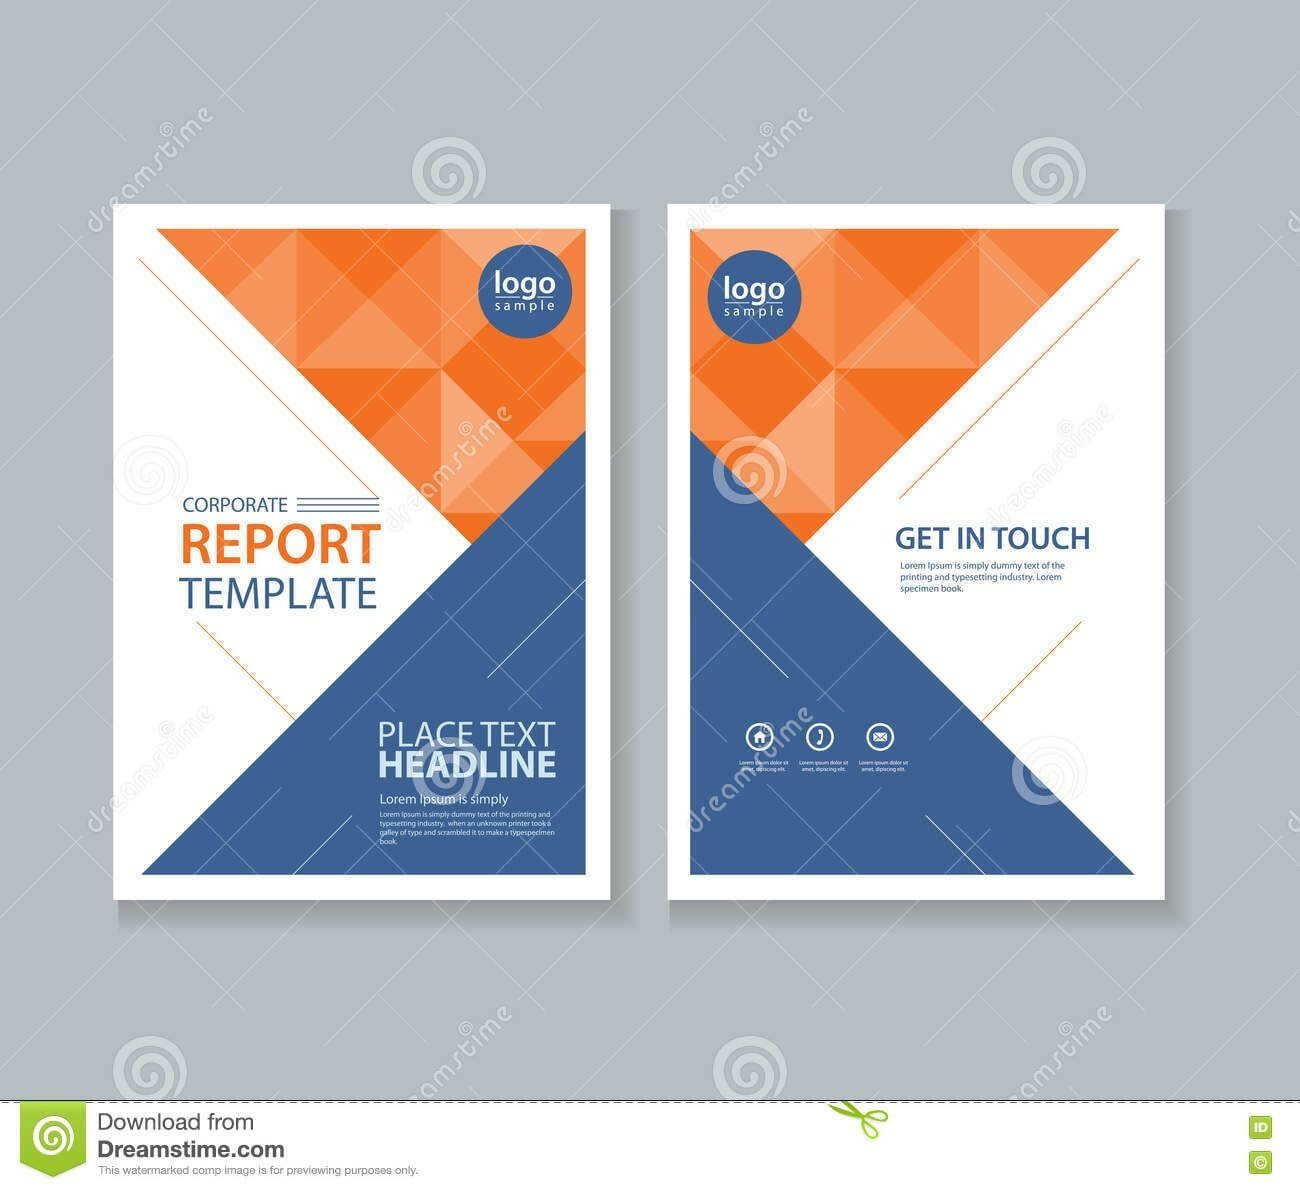 Report Cover Design Templates - Hatch.urbanskript.co For with regard to Cover Page Of Report Template In Word